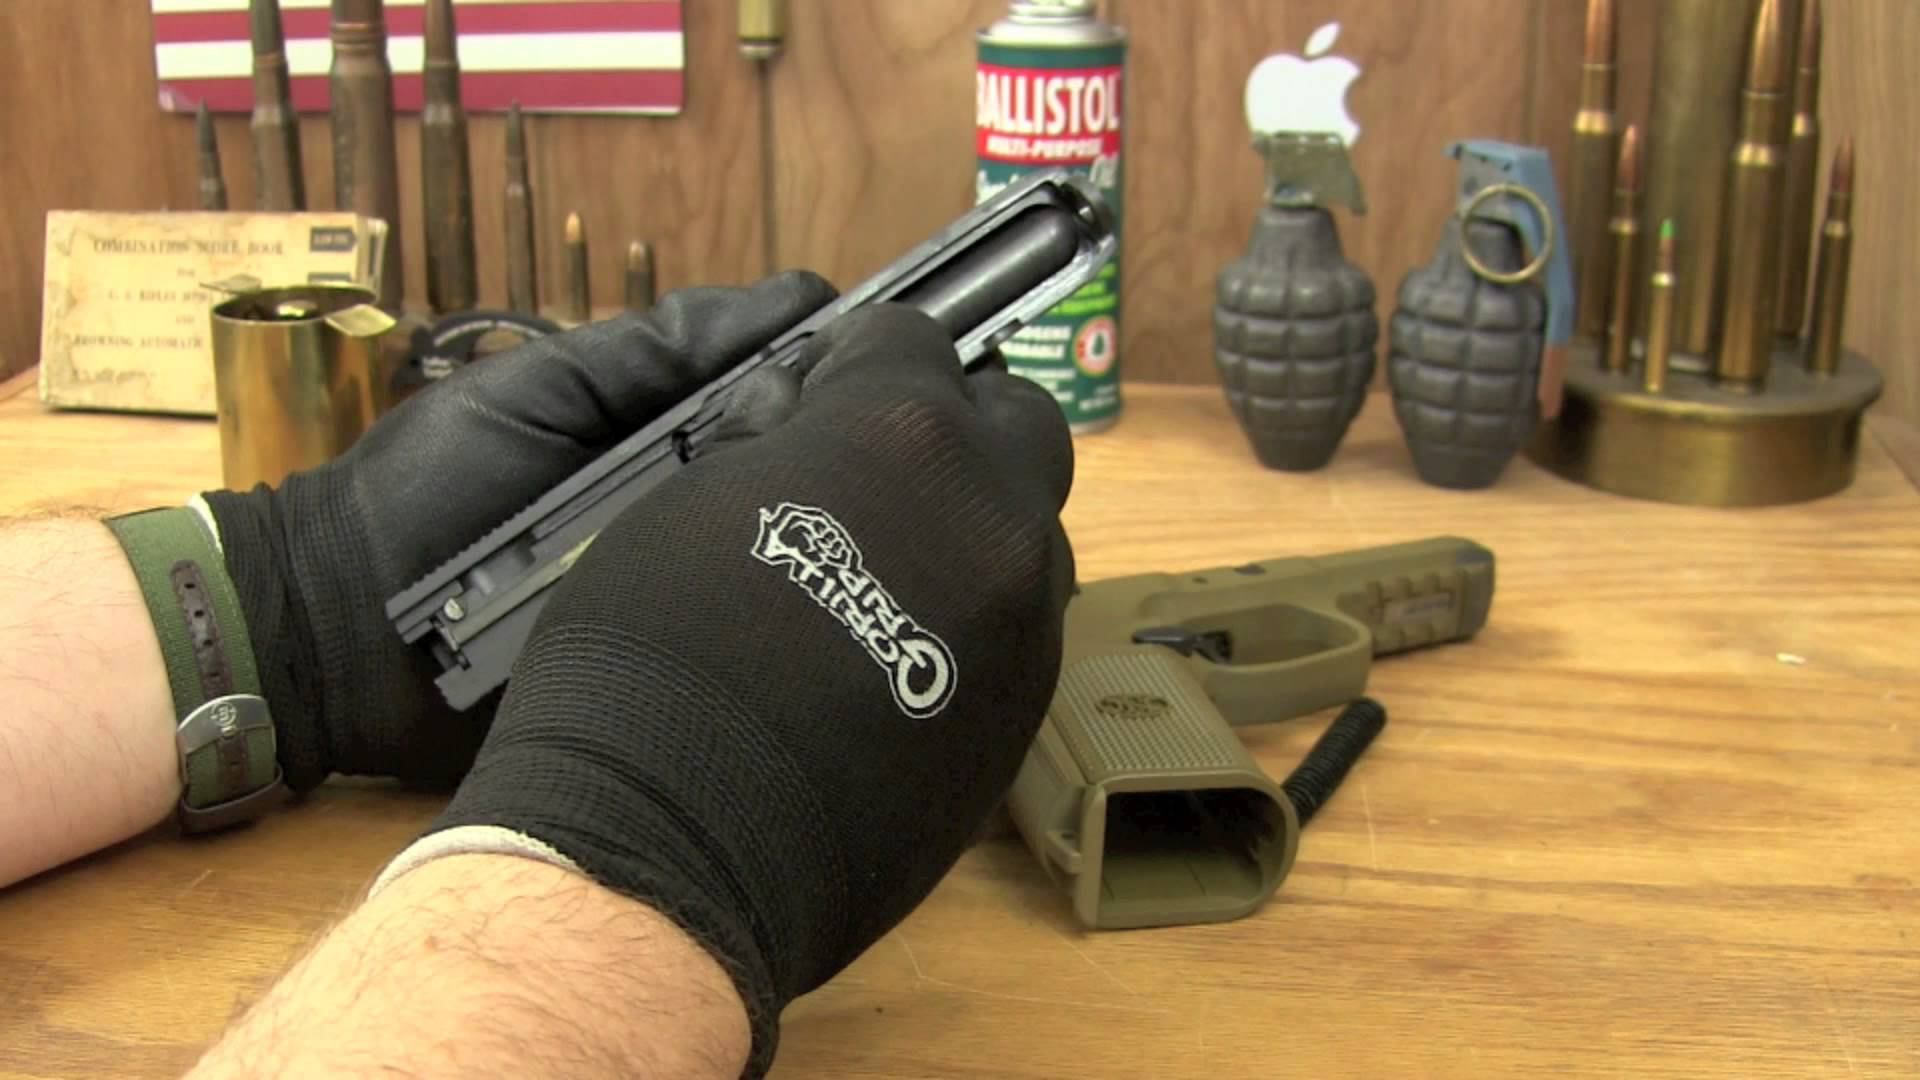 How to Field Strip and Reassemble the FN FNX Pistol